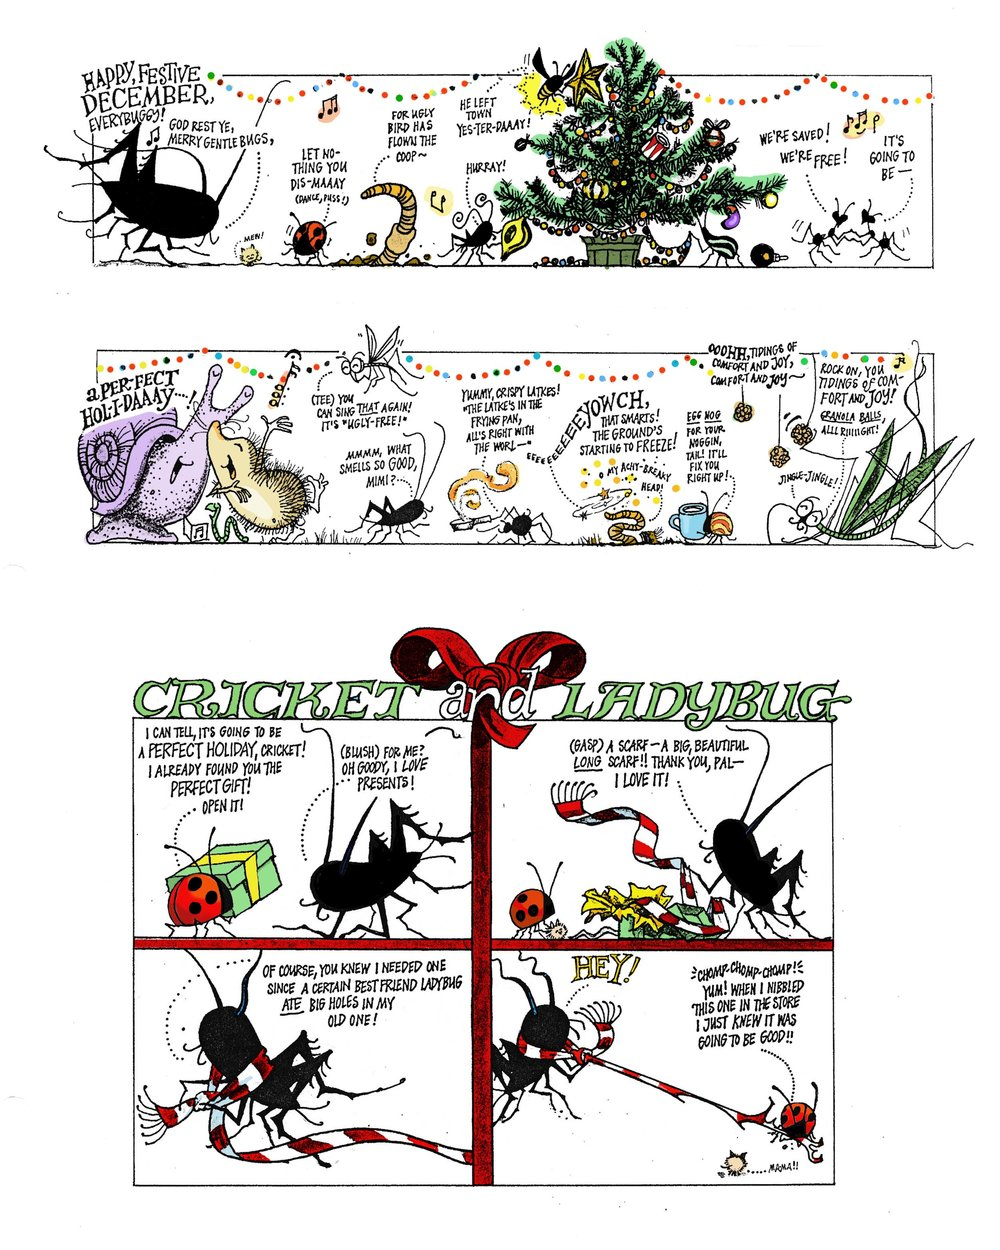 Cricket Magazine December comic: Cricket and the ladybug